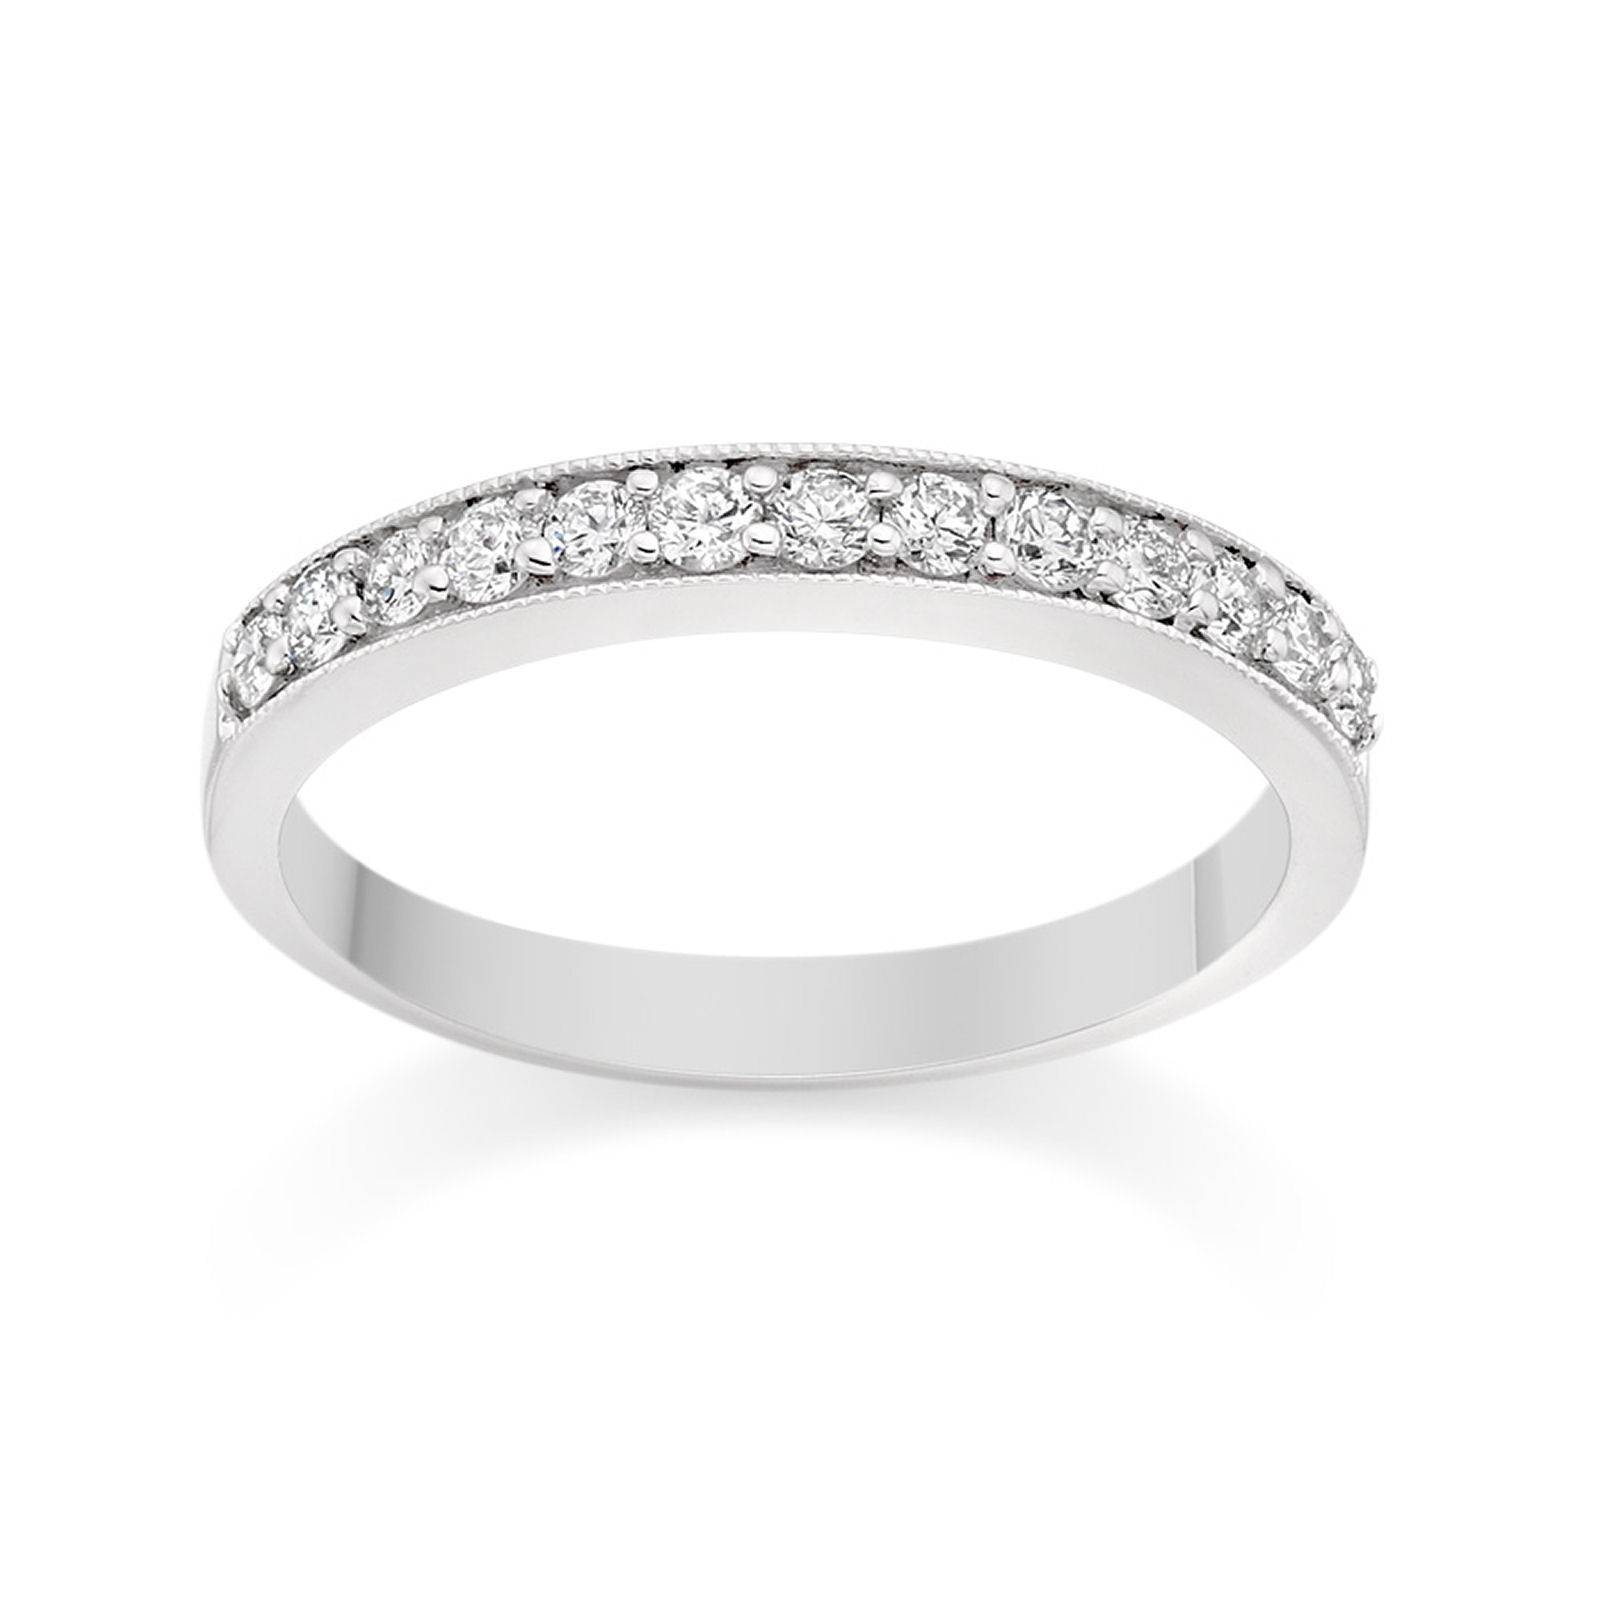 Milgrain Pave Set Diamond Wedding Ring In 18k White Gold Wedding Pertaining To Pave Diamond Wedding Rings (View 6 of 15)